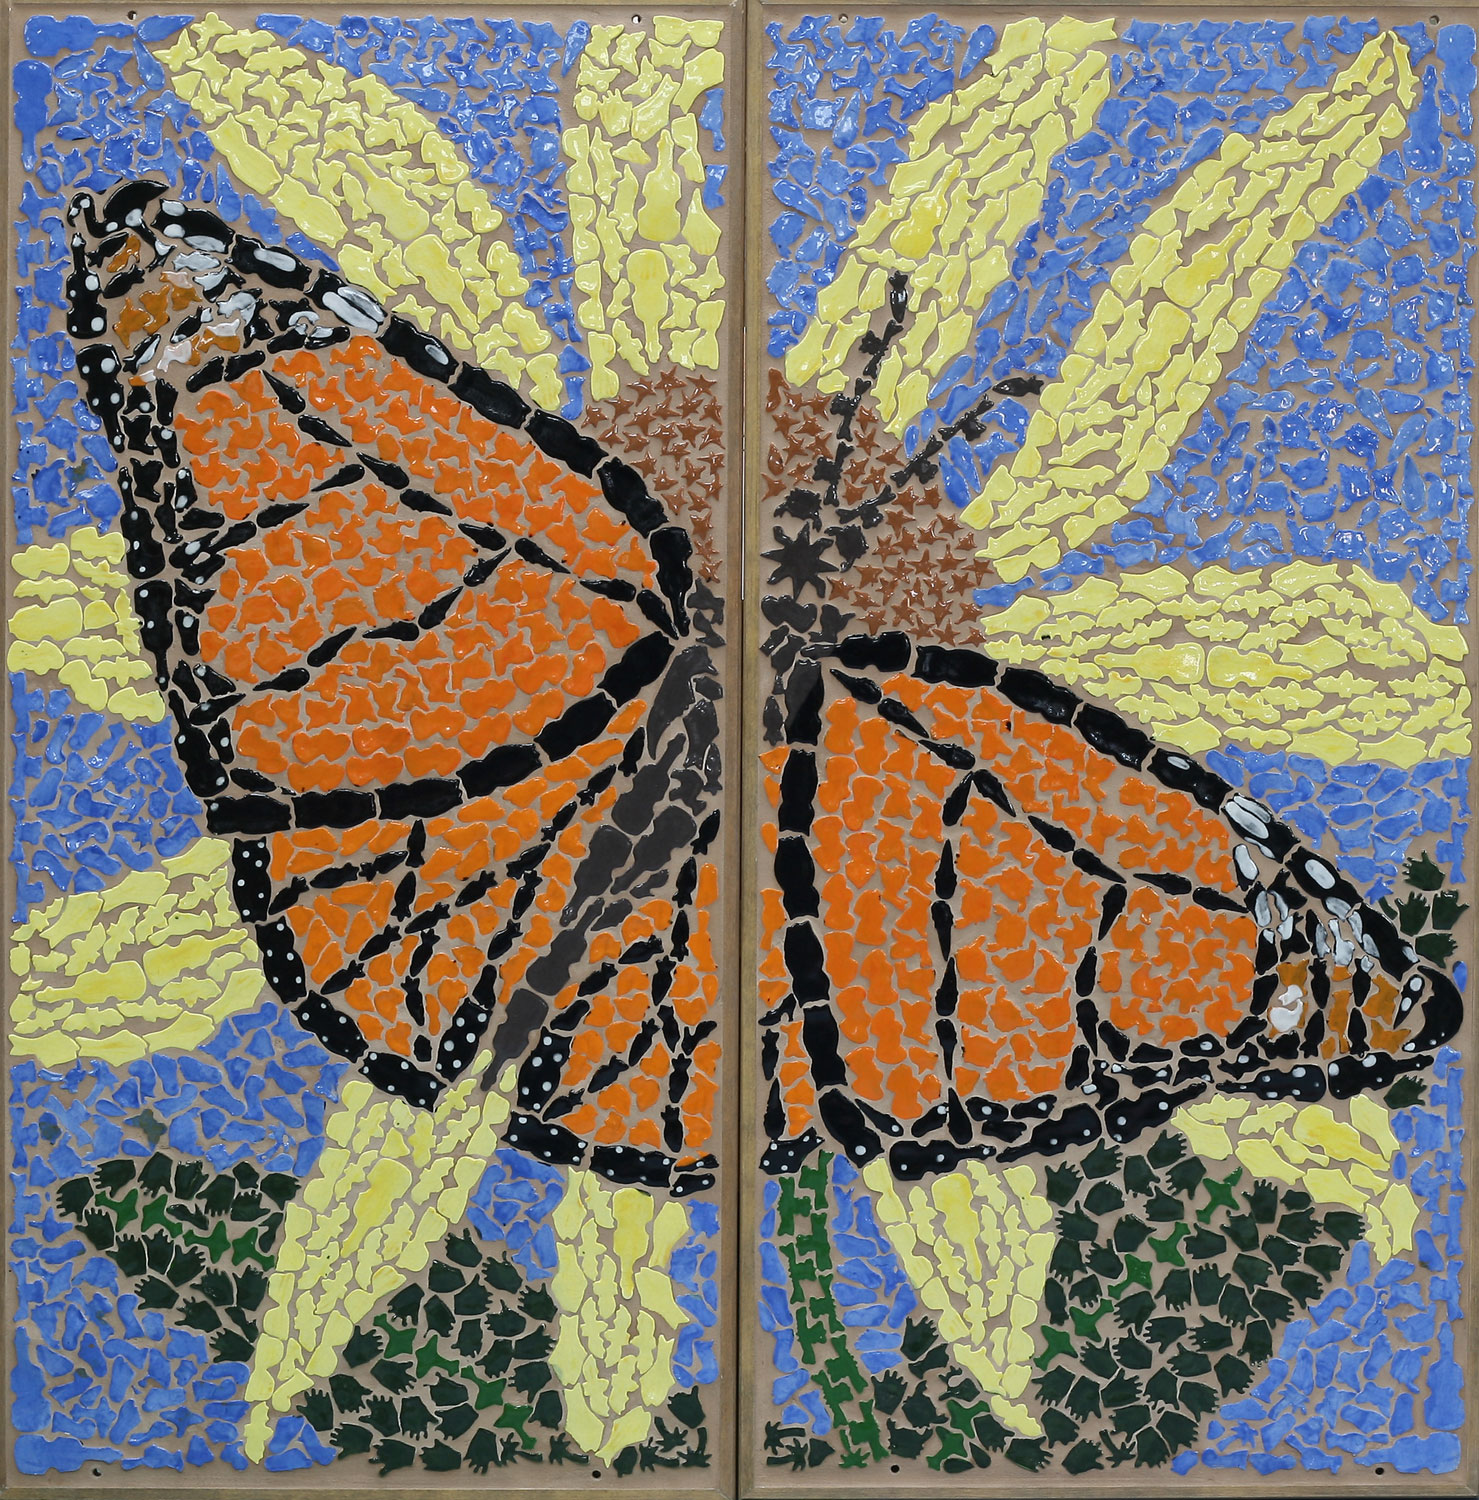 a two panel mosaic made with students from St. James the Greater in Cincinnati